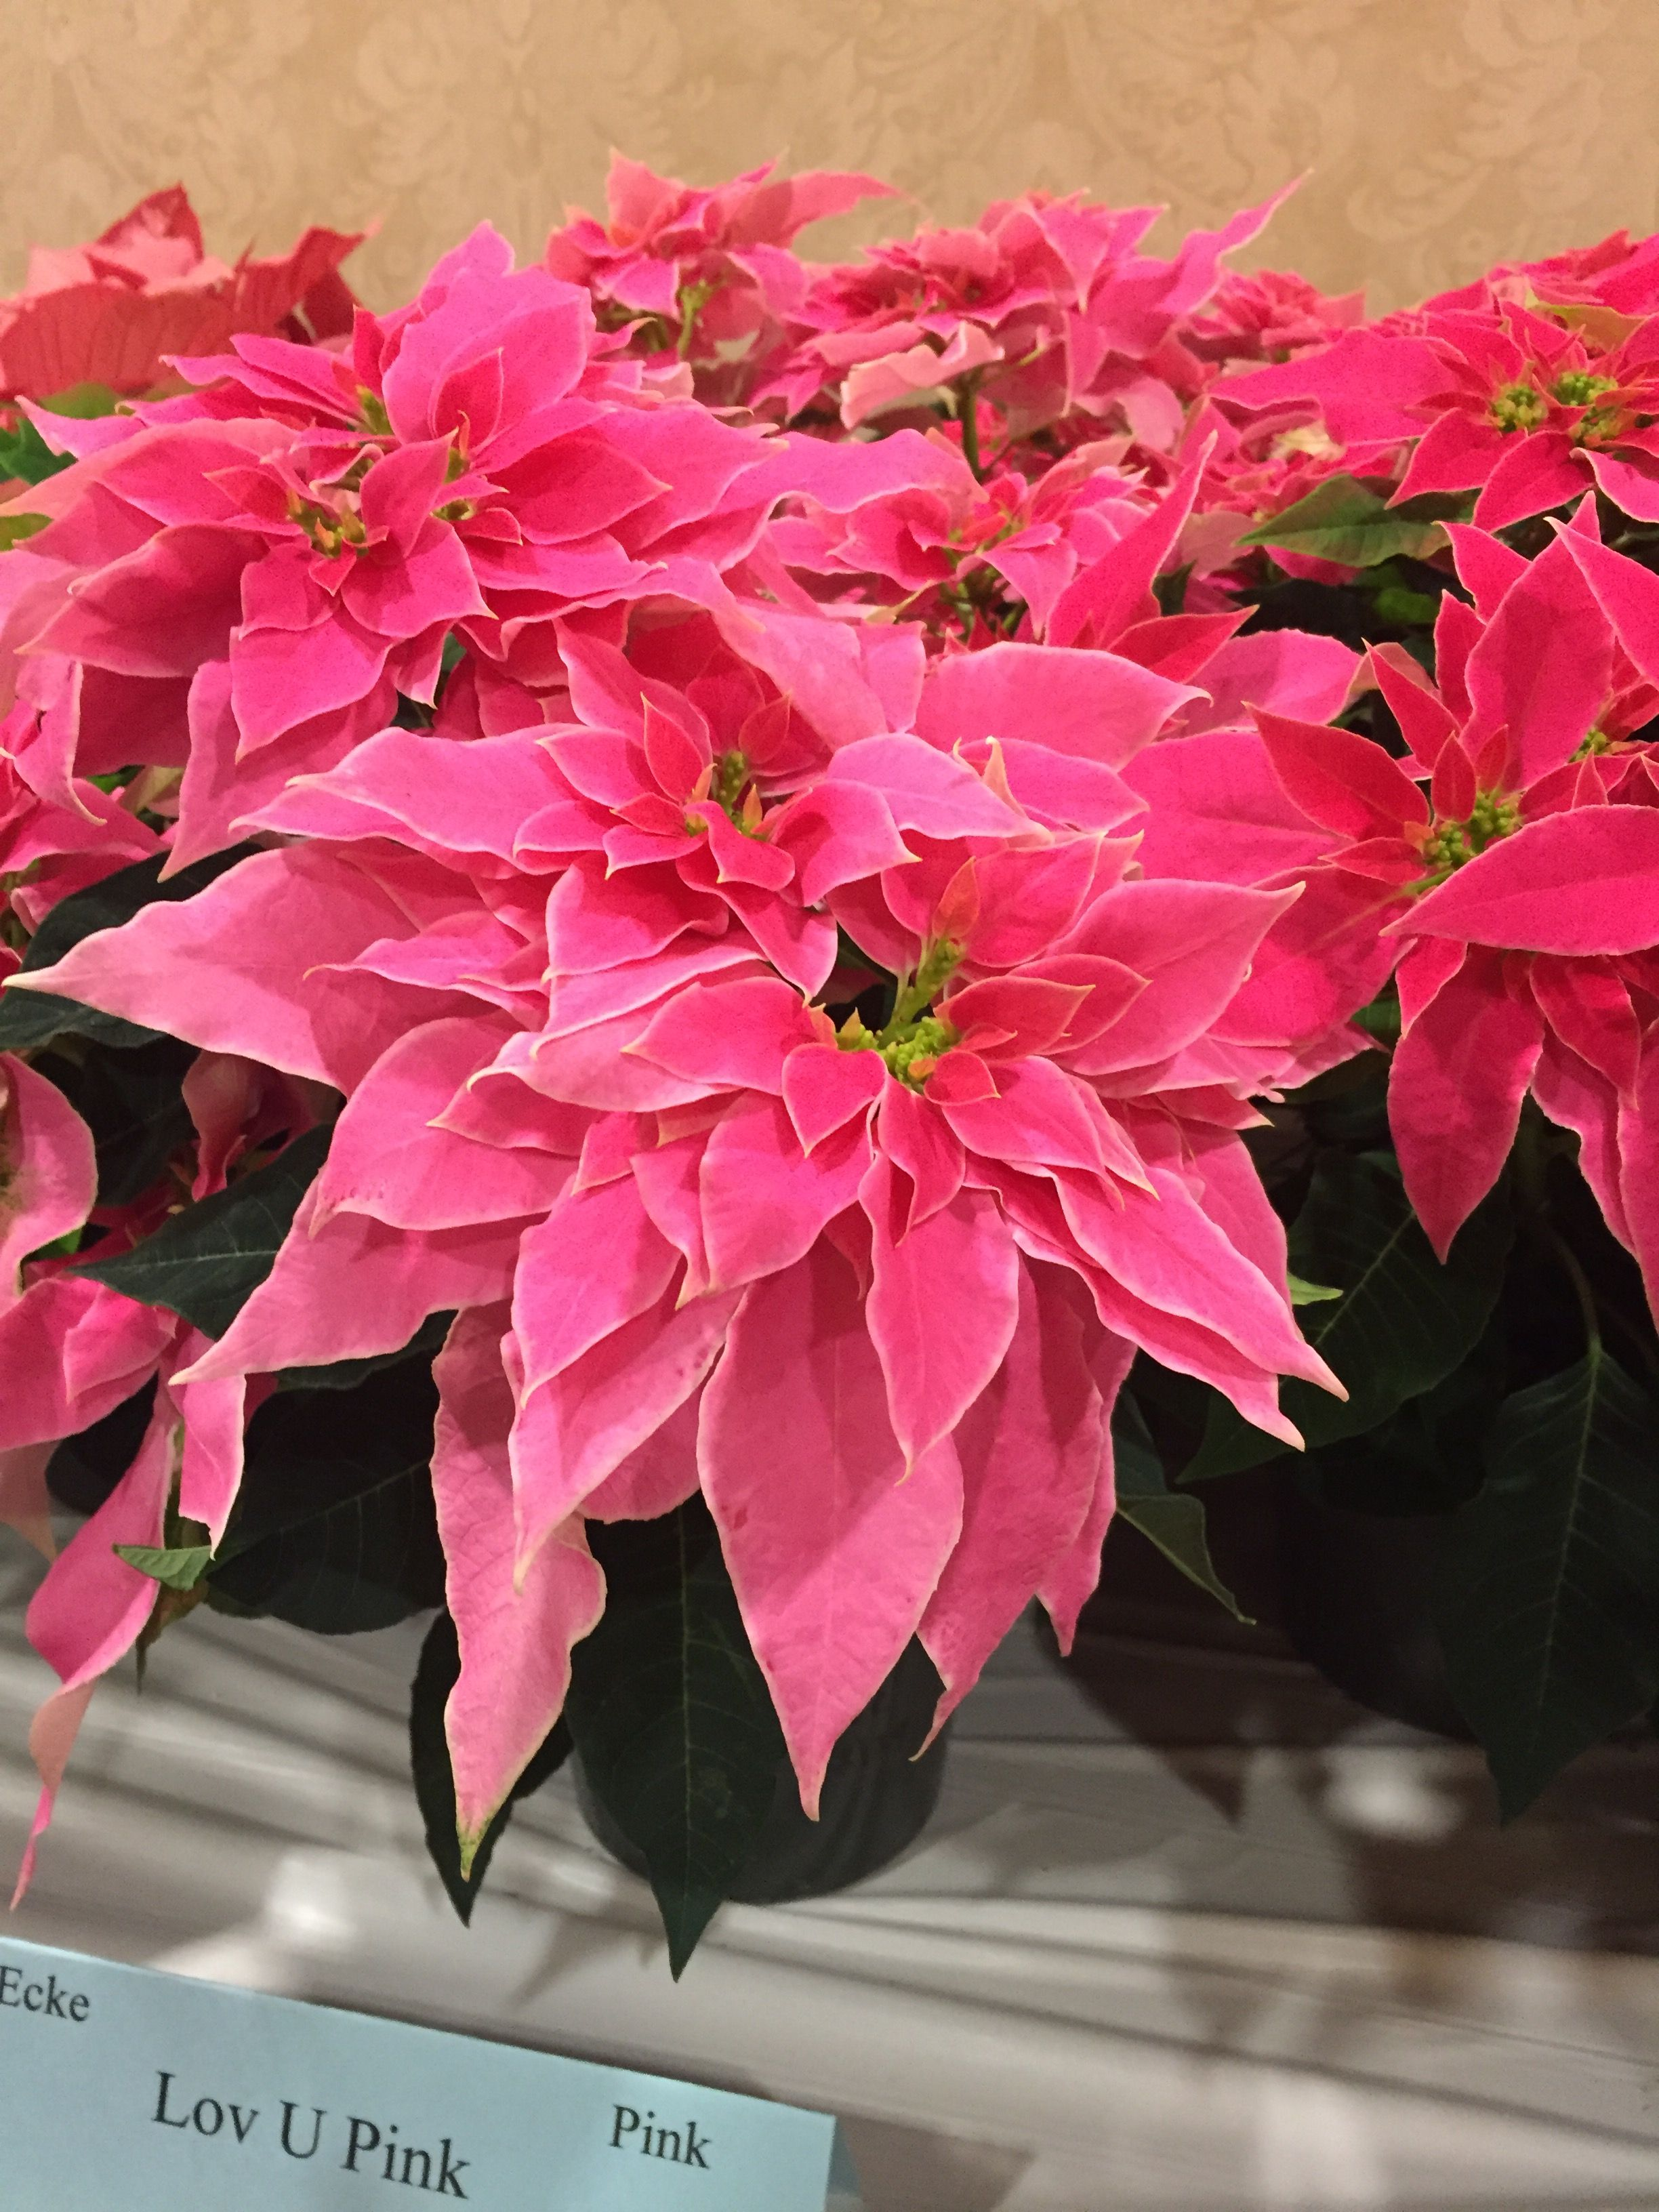 Absolutely Stunning Luv U Pink Poinsettia Has White Thin Edges Christmas Plants Pretty Flowers White Flowers Garden